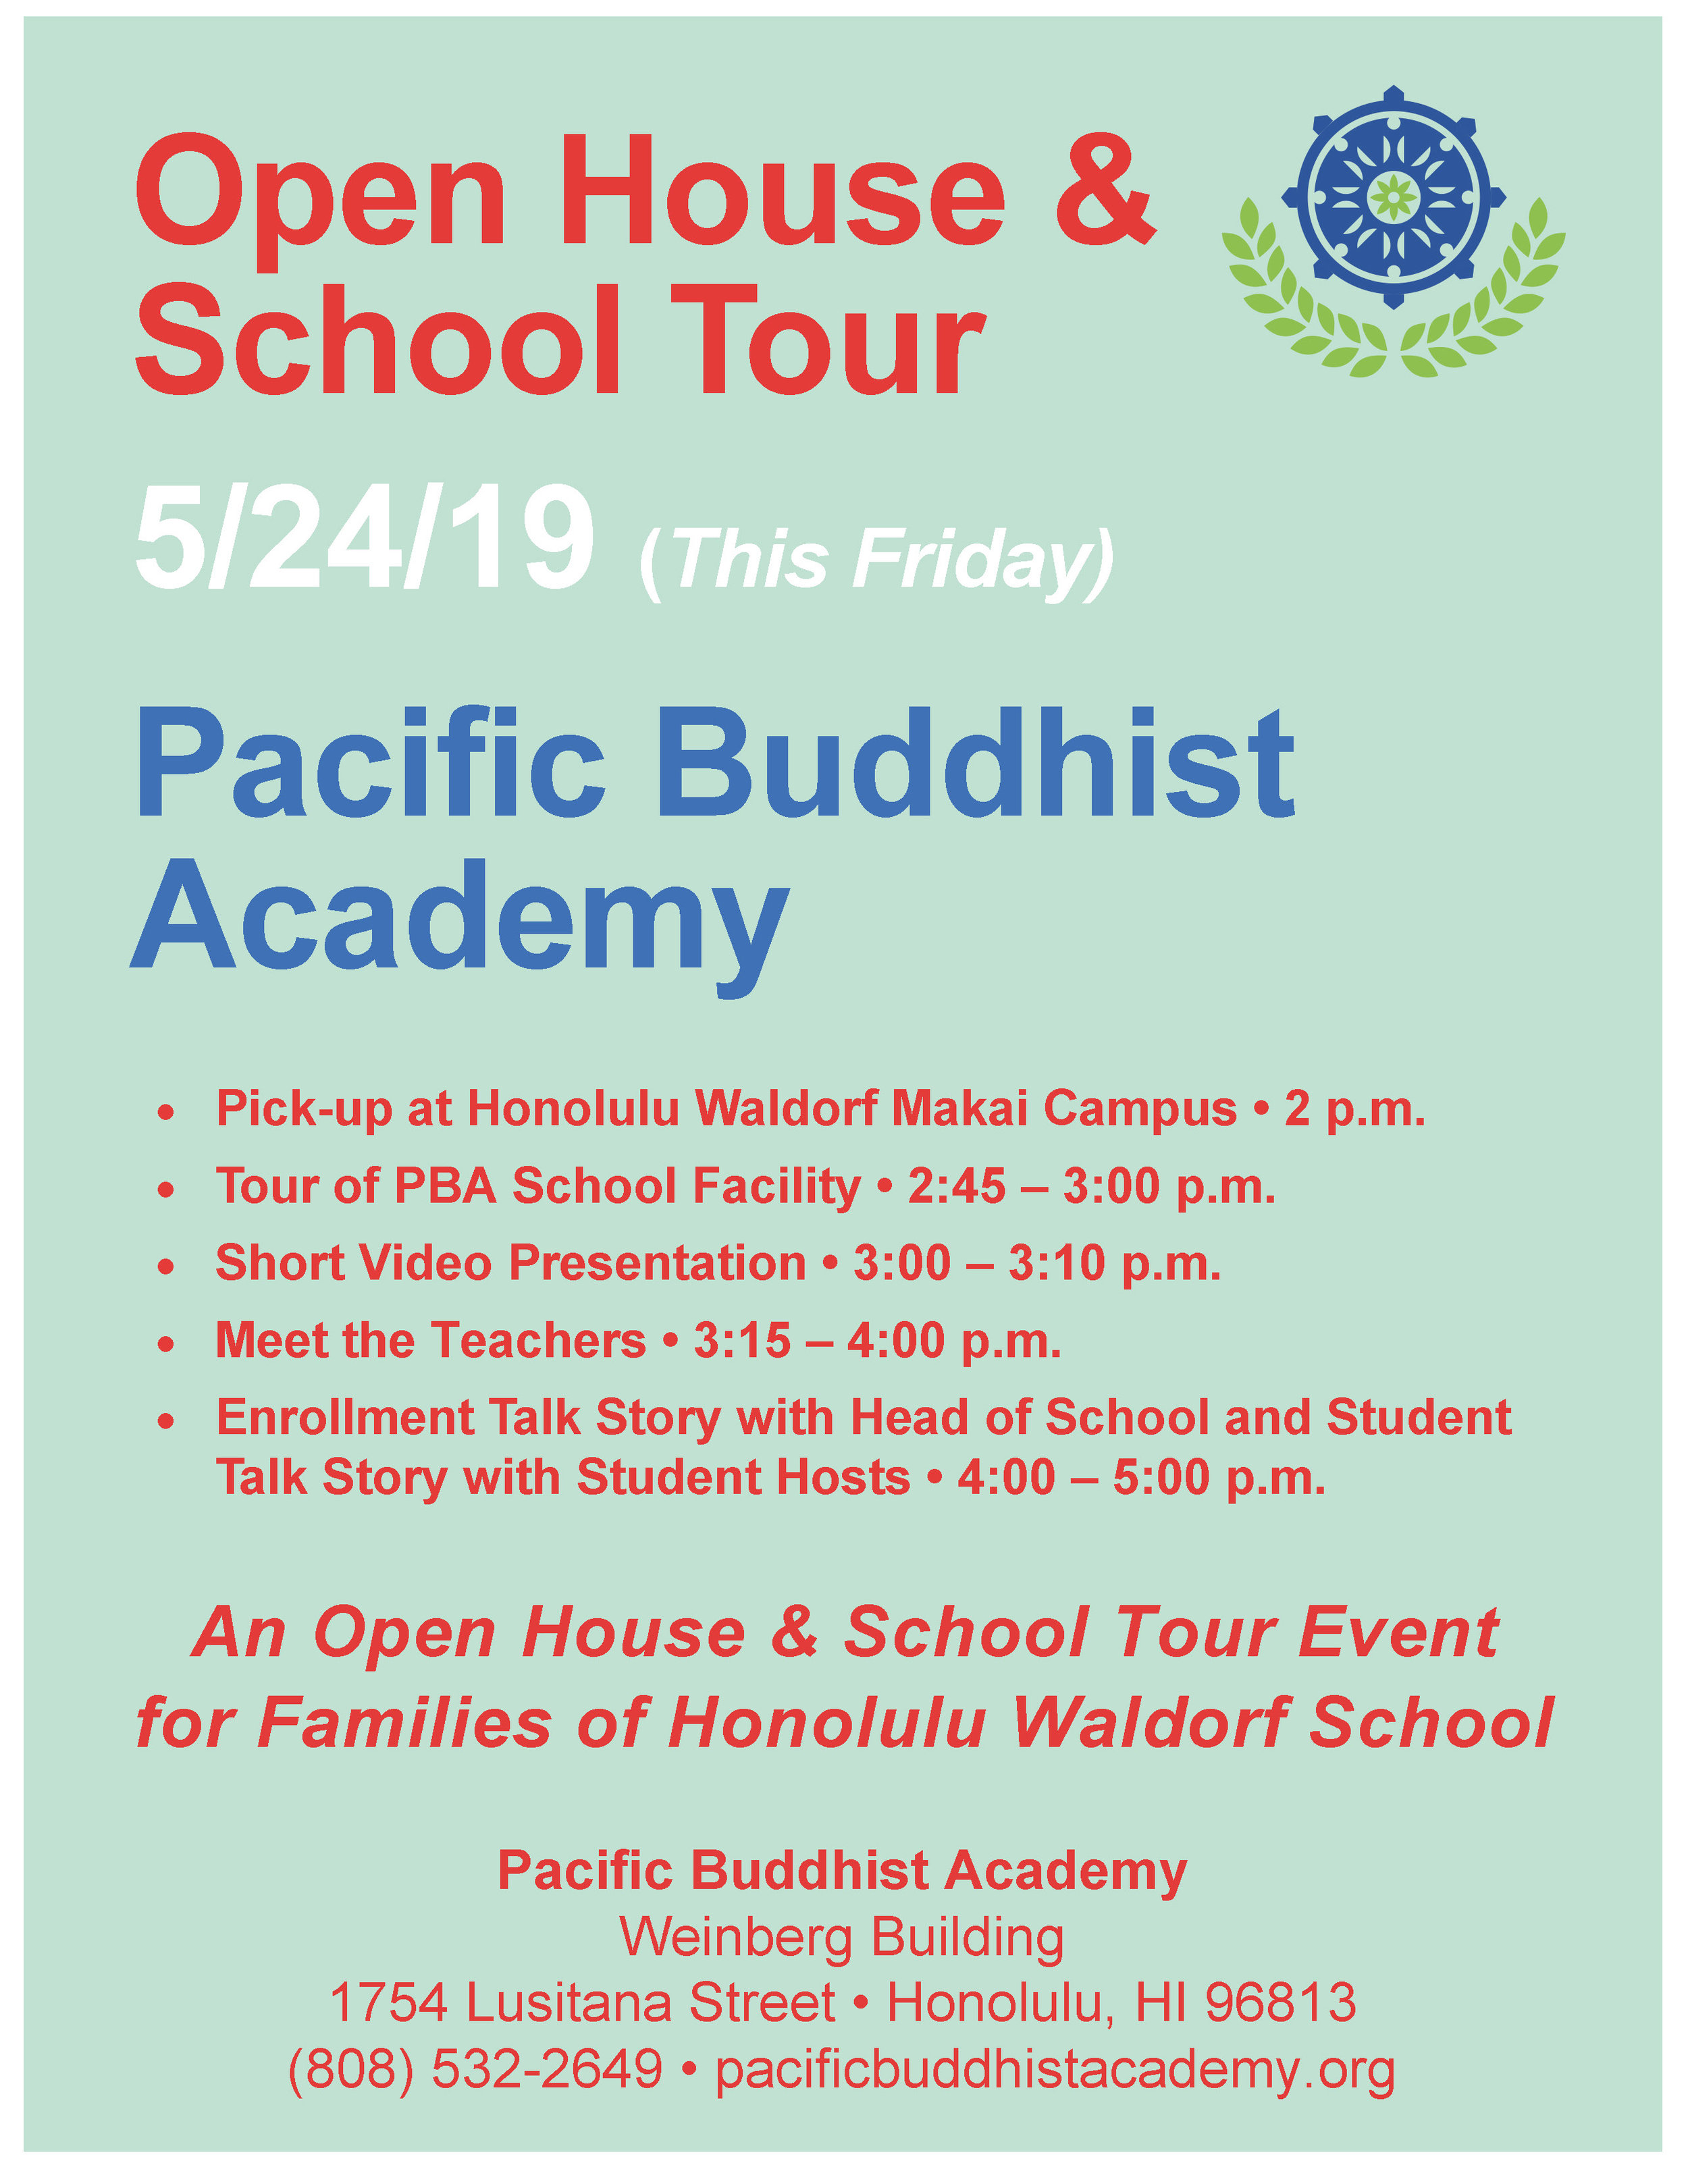 Pacific Buddhist Academy Open House Flyer.jpg